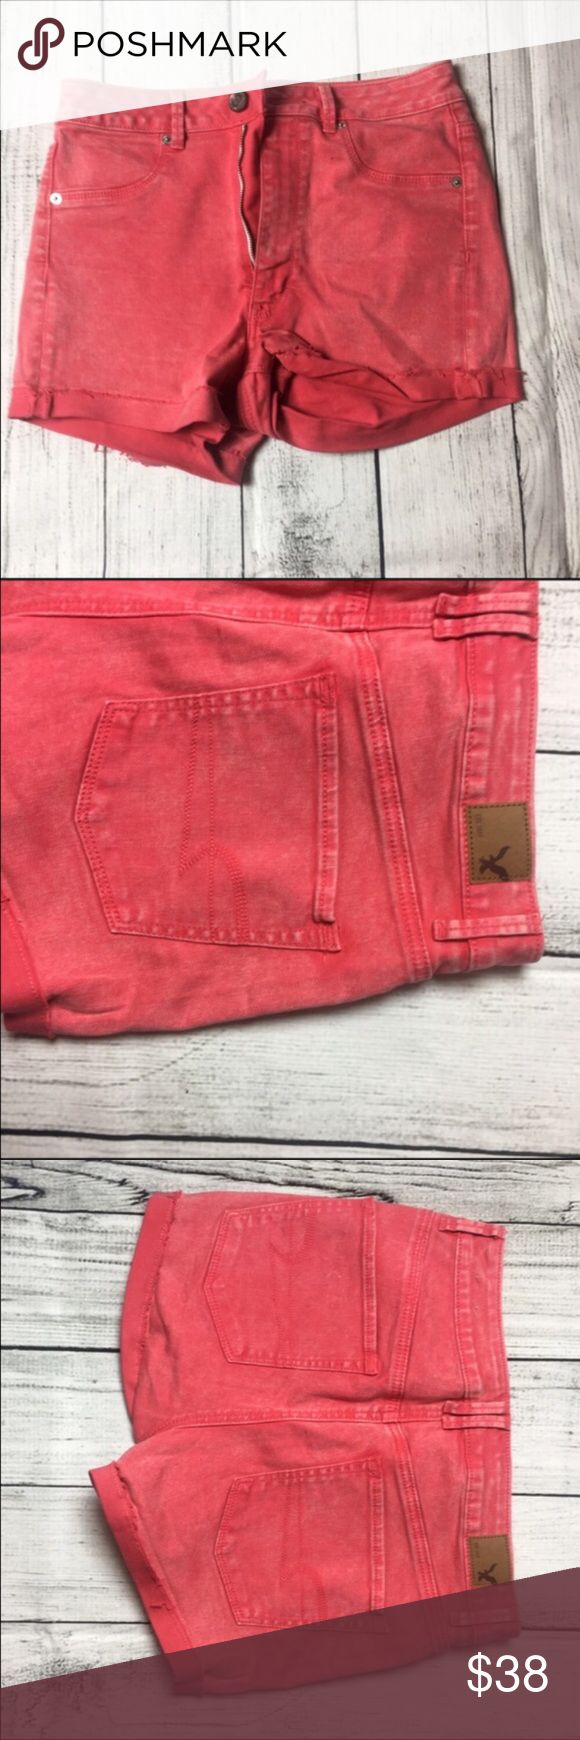 """Super cute high waist acid jean shorts❤️ Super cute acid wash high waisted jean shorts. They are a peachy reddish color. They are super cute and comfy. They are brand new and have never been worn. They are super comfy and stretchy. They have a high waist style to them and the hems a cuffed. They are made out of 98%cotton & 2% elastane materials. Length 12"""" & waist is 14"""" ❤️NWOT American Eagle Outfitters Shorts Jean Shorts"""